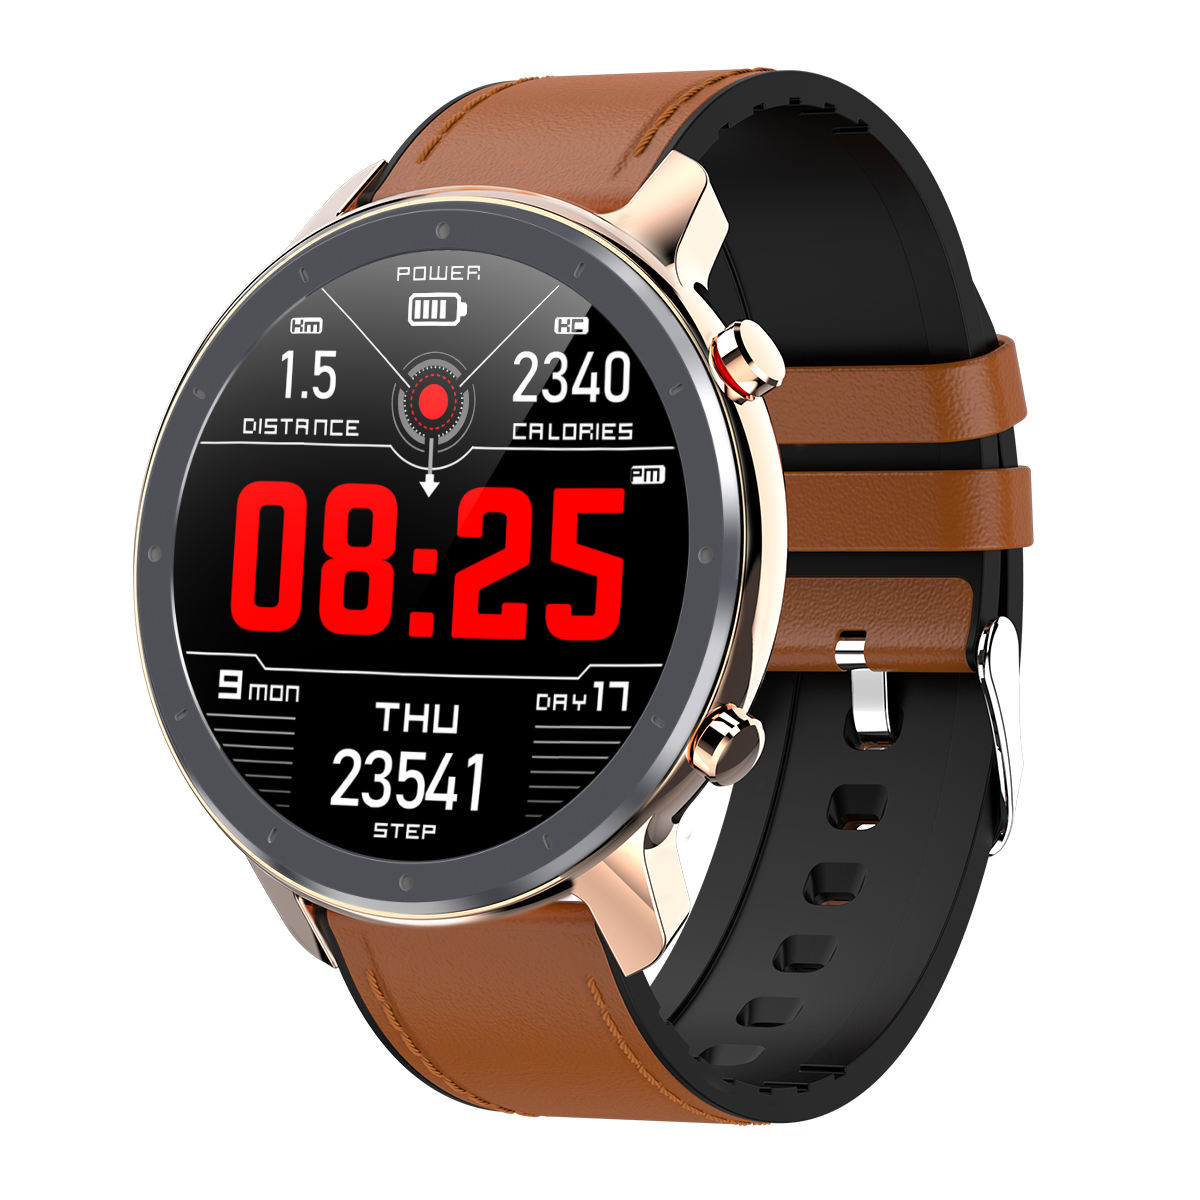 L11 Multifungsi Magnetic <span class=keywords><strong>Charger</strong></span> EKG 1.3 Inci <span class=keywords><strong>Olahraga</strong></span> Tahan Air Smart Watch